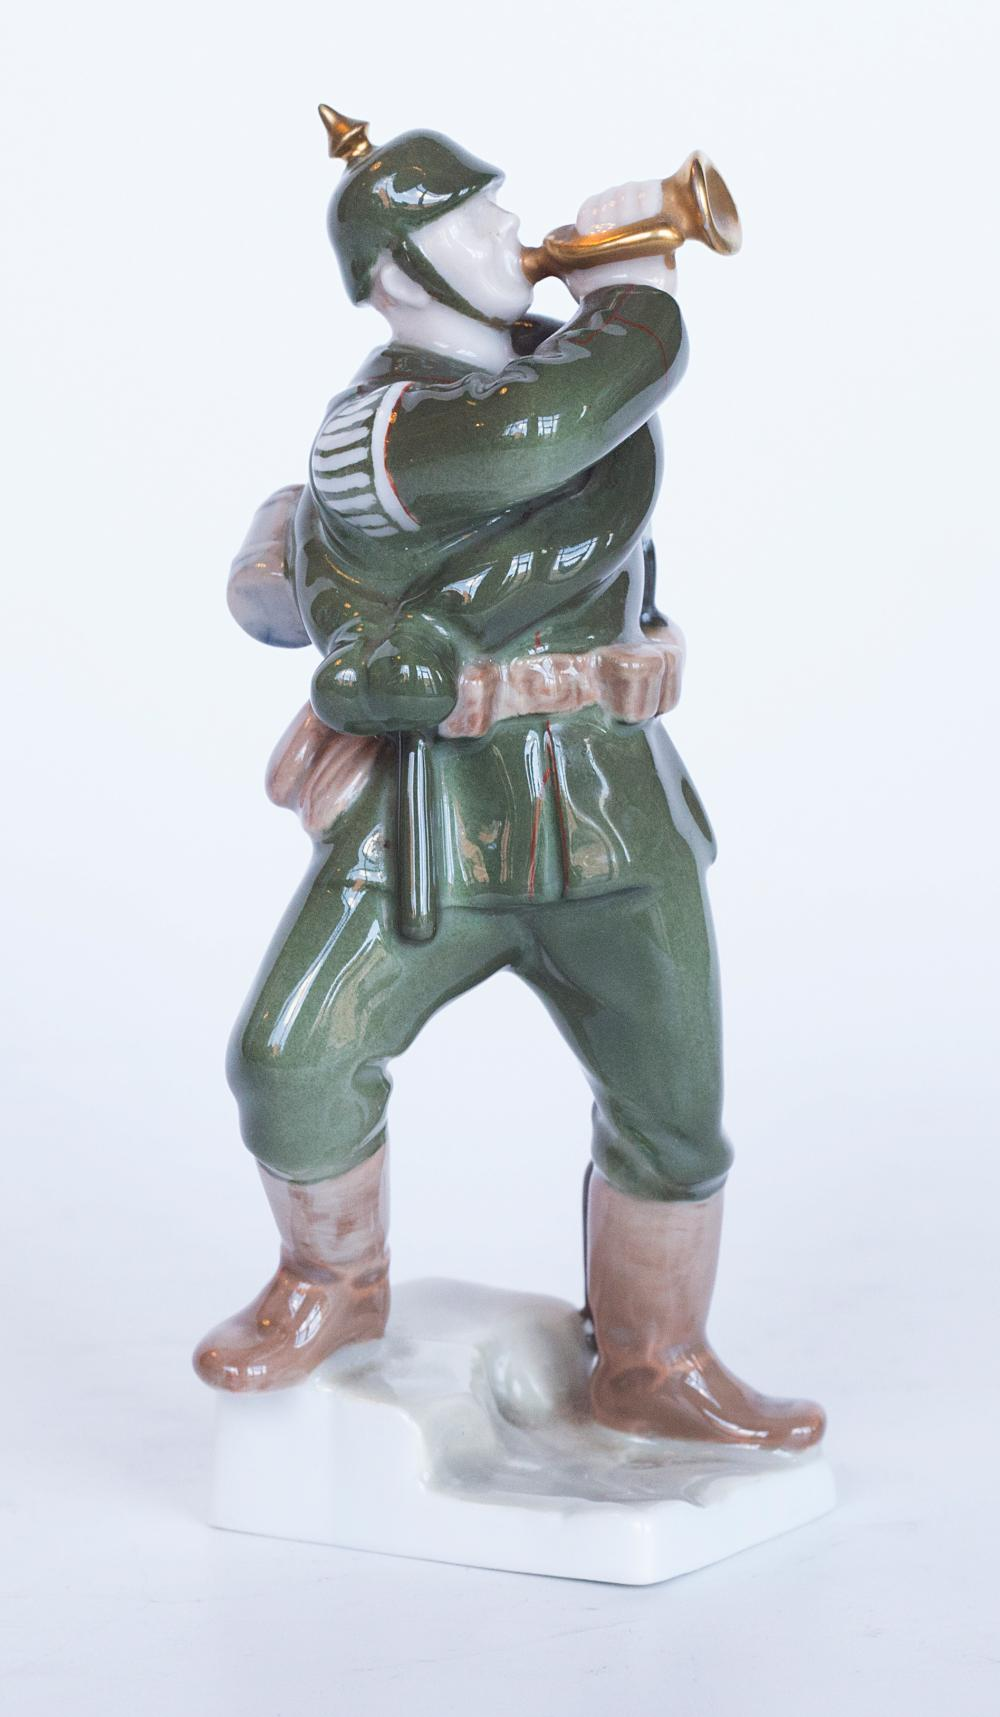 Rare Rosenthal hand painted porcelain soldier figurine by Albert Caasmann